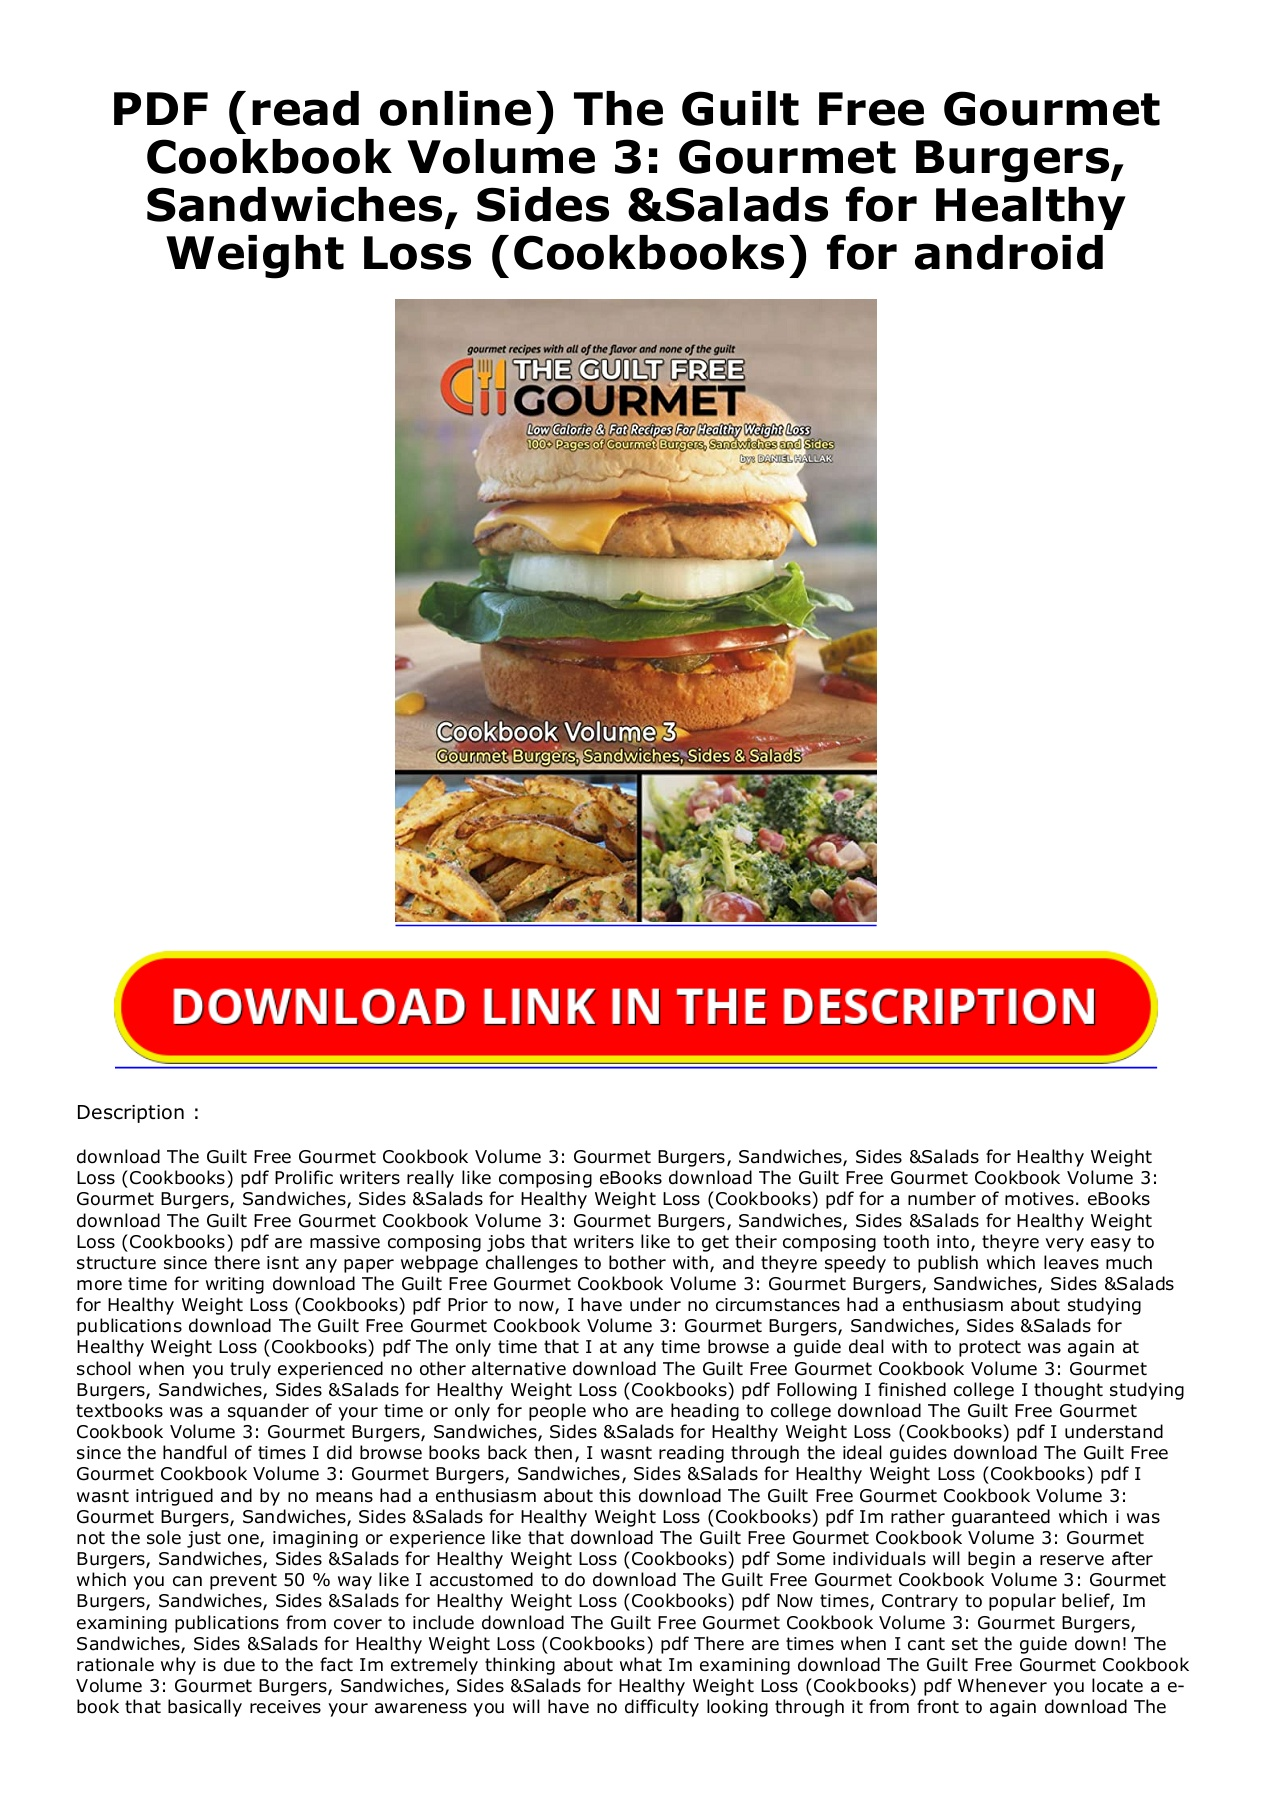 Pdf Read Online The Guilt Free Gourmet Cookbook Volume 3 Gourmet Burgers Sandwiches Sides Salads For Healthy Weight Loss Cookbooks For Android Flip Ebook Pages 1 2 Anyflip Anyflip